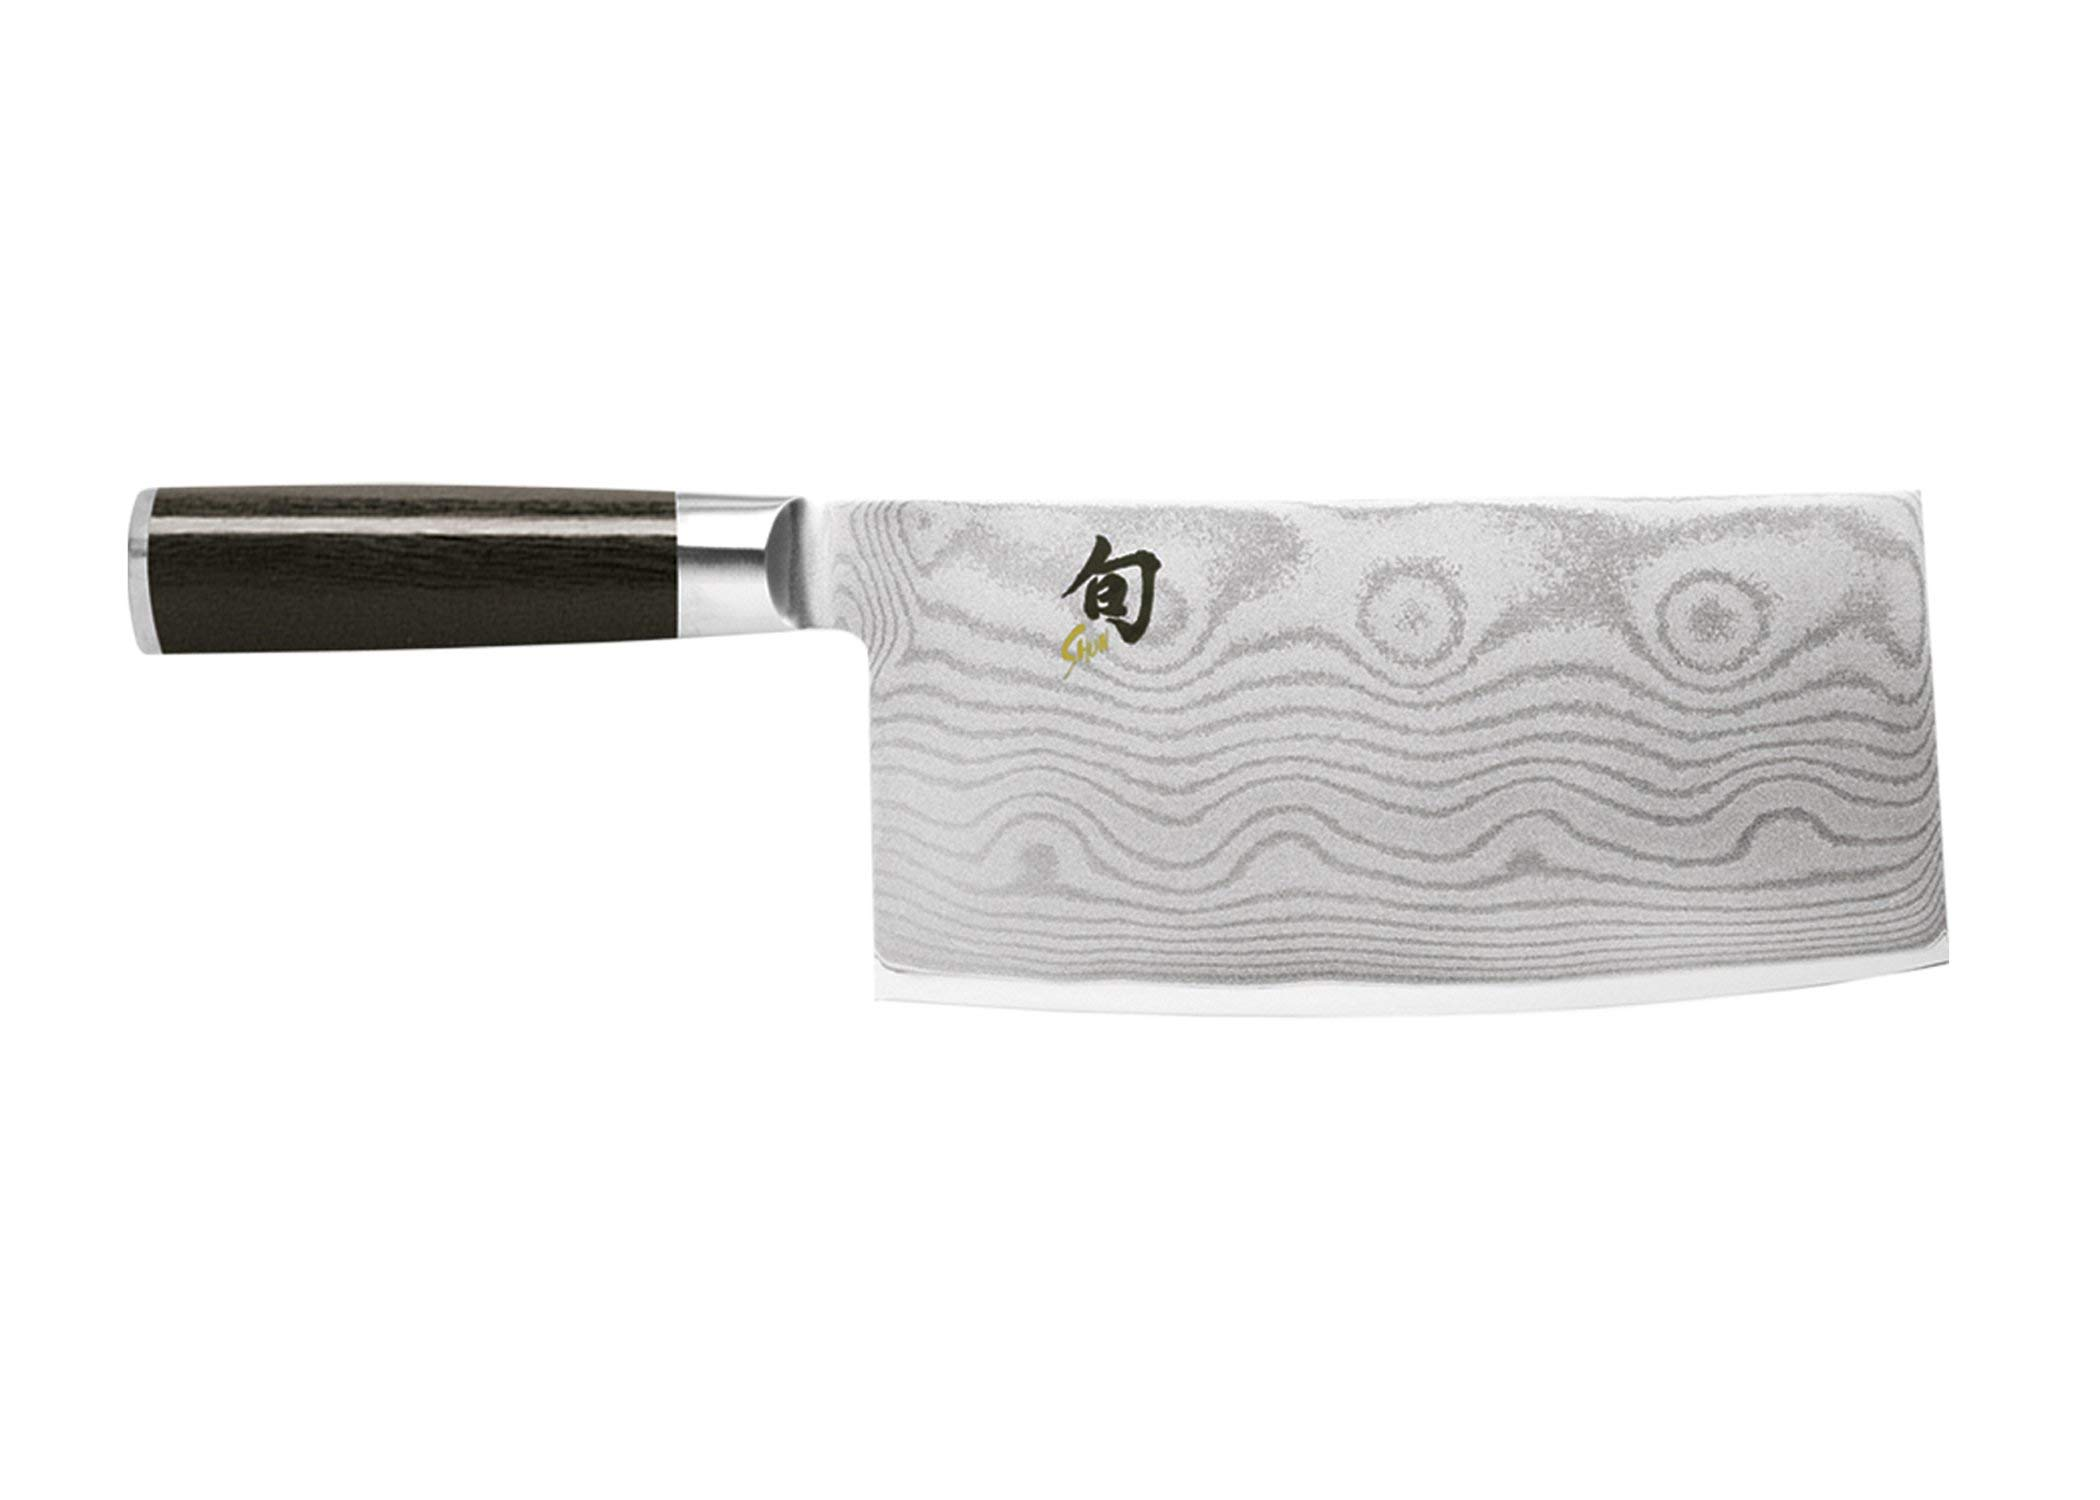 Shun Classic 7'' Vegetable Cleaver; Ebony PakkaWood Handle and VG-MAX Damascus Clad, Blade Steel; Ultimate Tool for Chopping and Slicing Vegetables, Handcrafted in Japan by Skilled Artisans by Shun